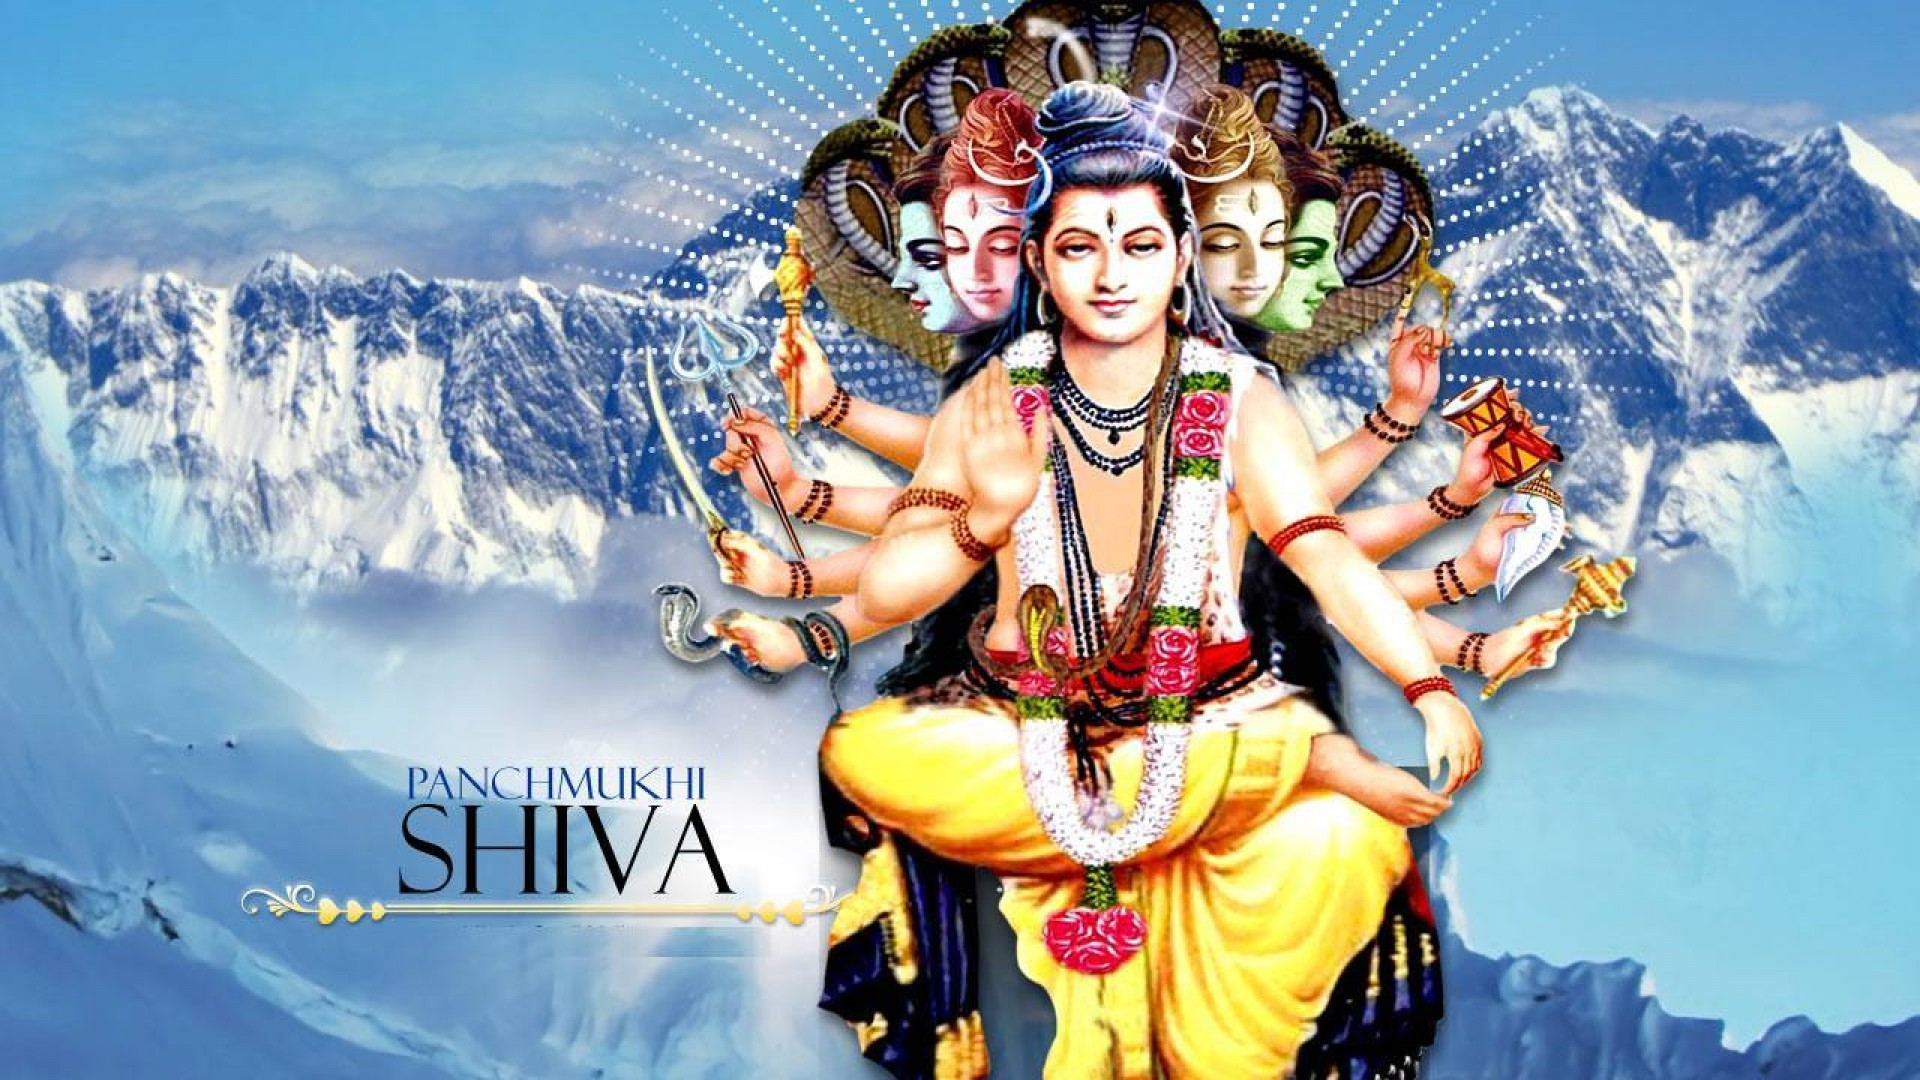 Lord Shiva Wallpapers High Resolution - Everest - HD Wallpaper